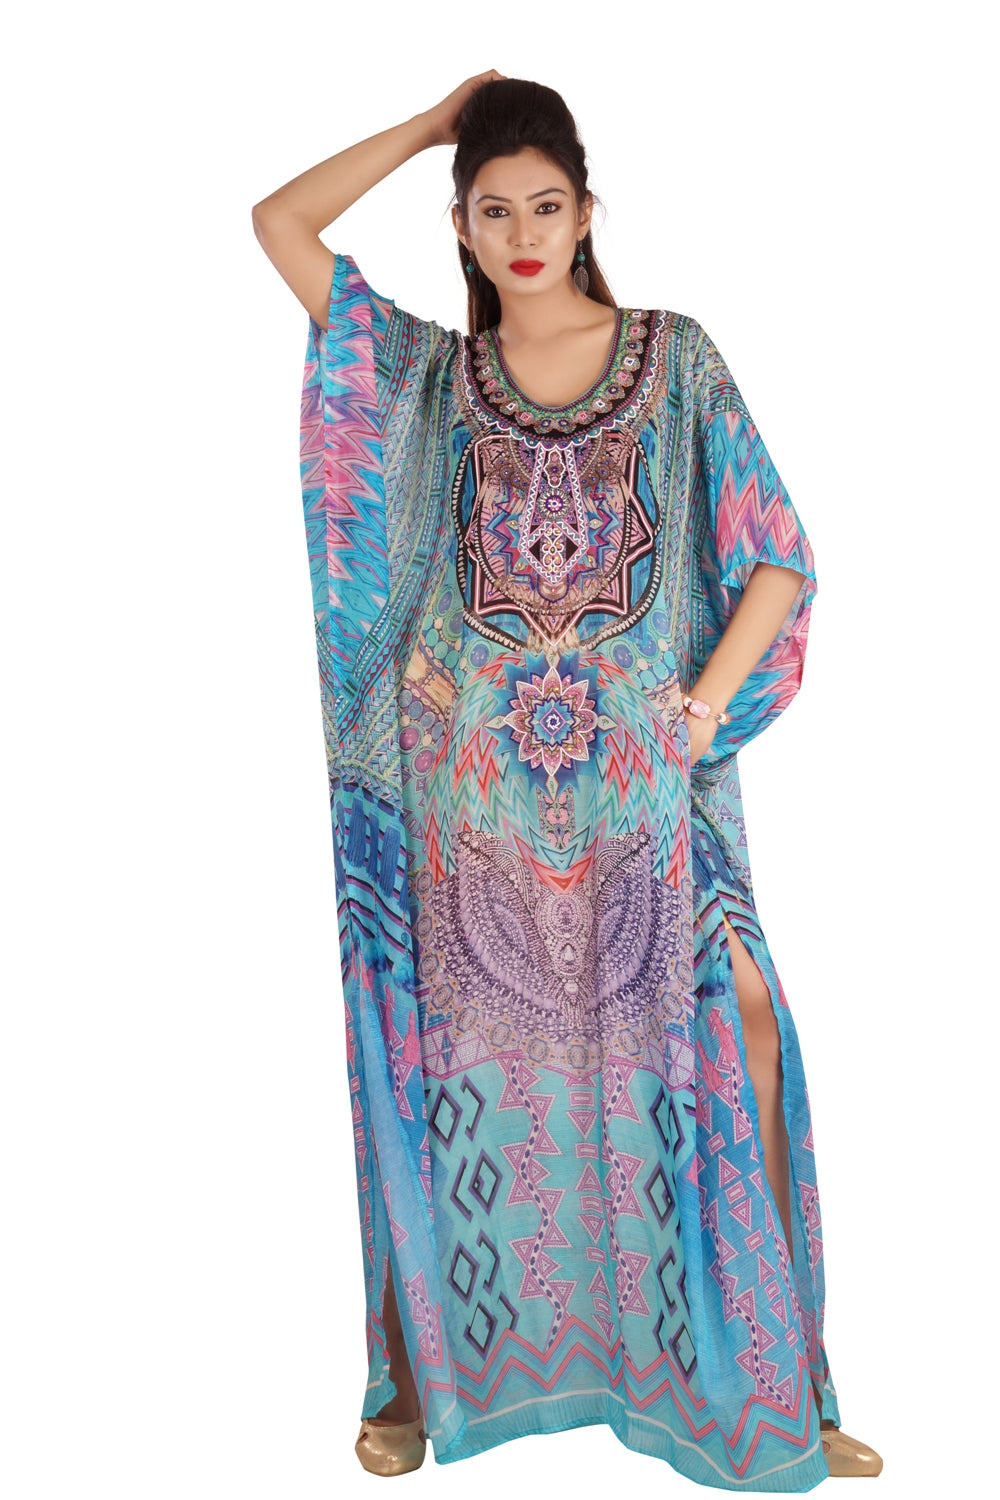 Skies' Blue Full Length Silk Kaftan marvelously printed geometric design/patterns luxe beach kaftan - Silk kaftan